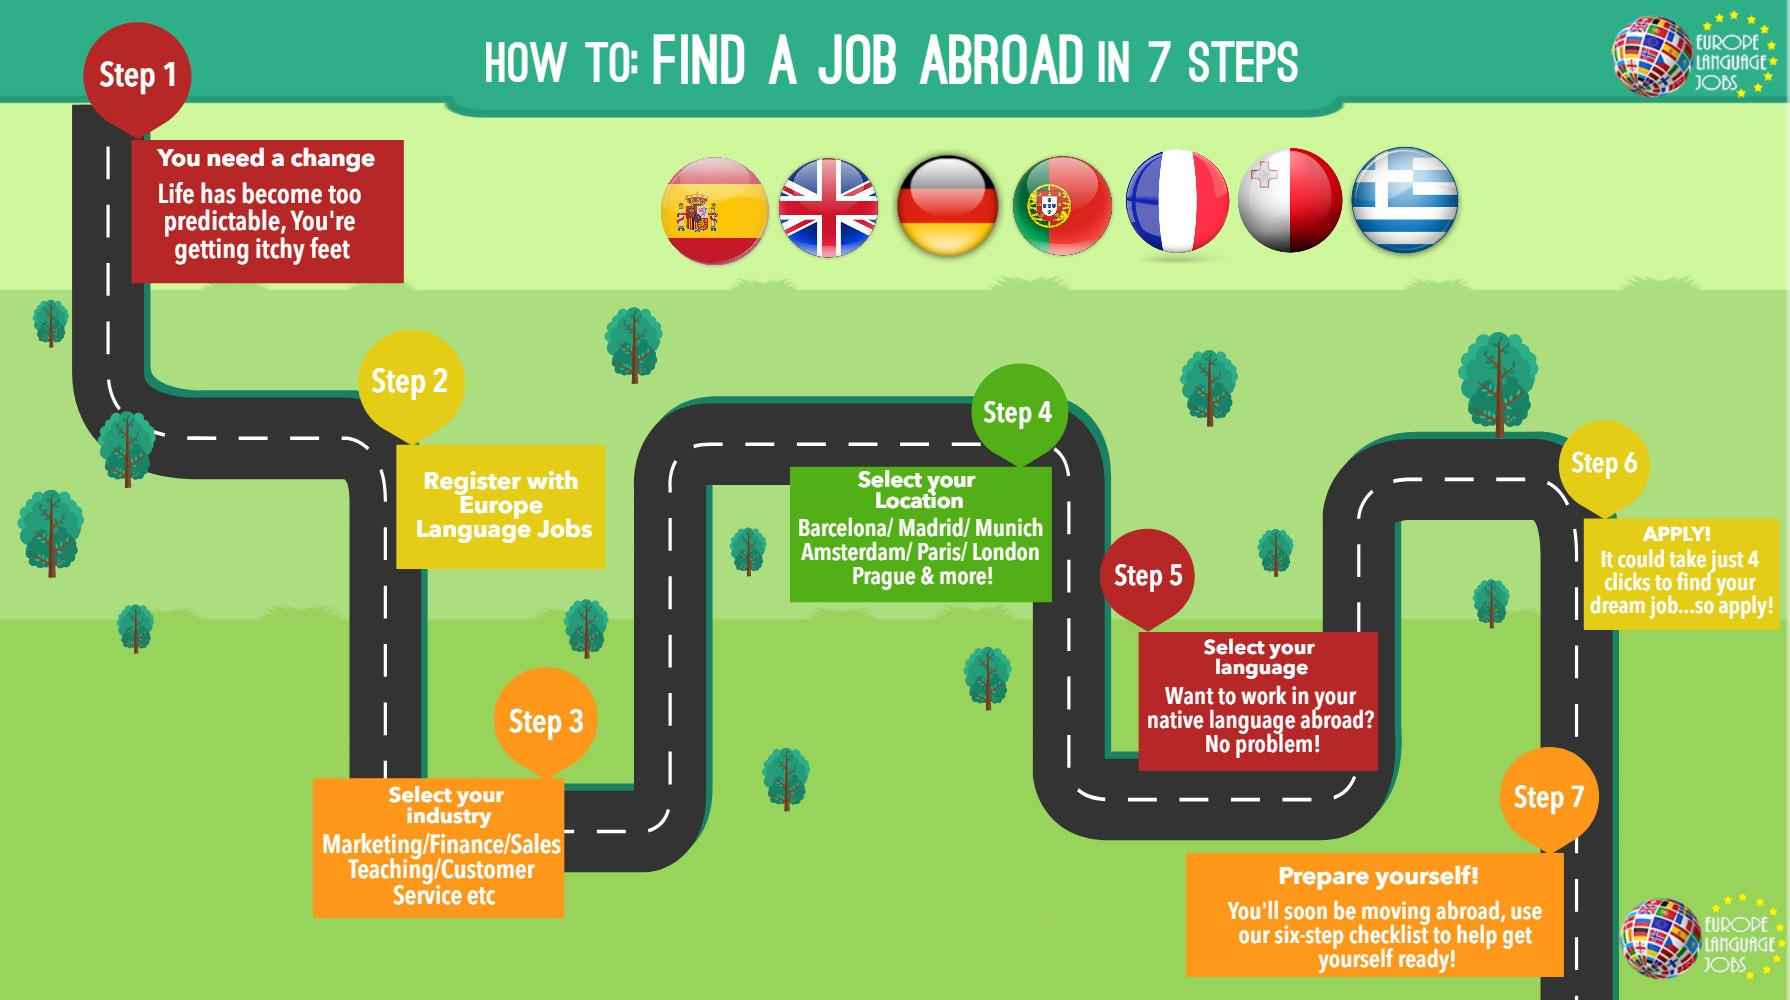 How To Find A Job Abroad In 7 Easy Steps